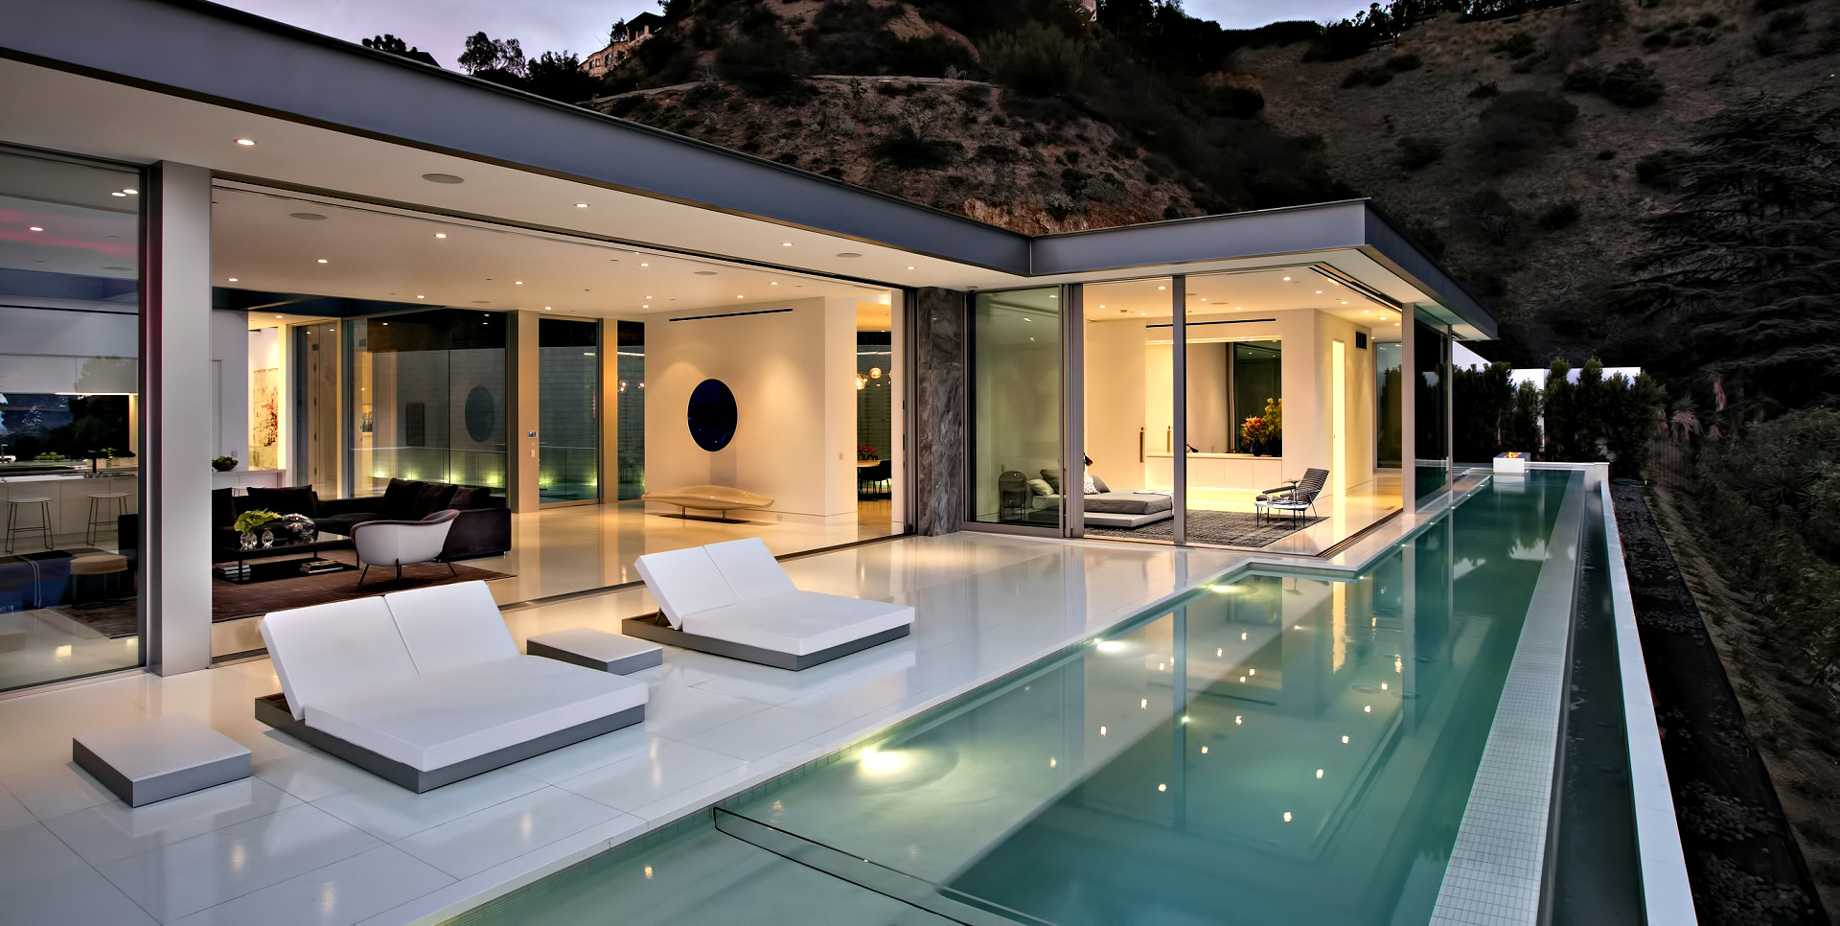 Hollywood Hills Modern - 1814 N Doheny Dr, Los Angeles, CA, USA